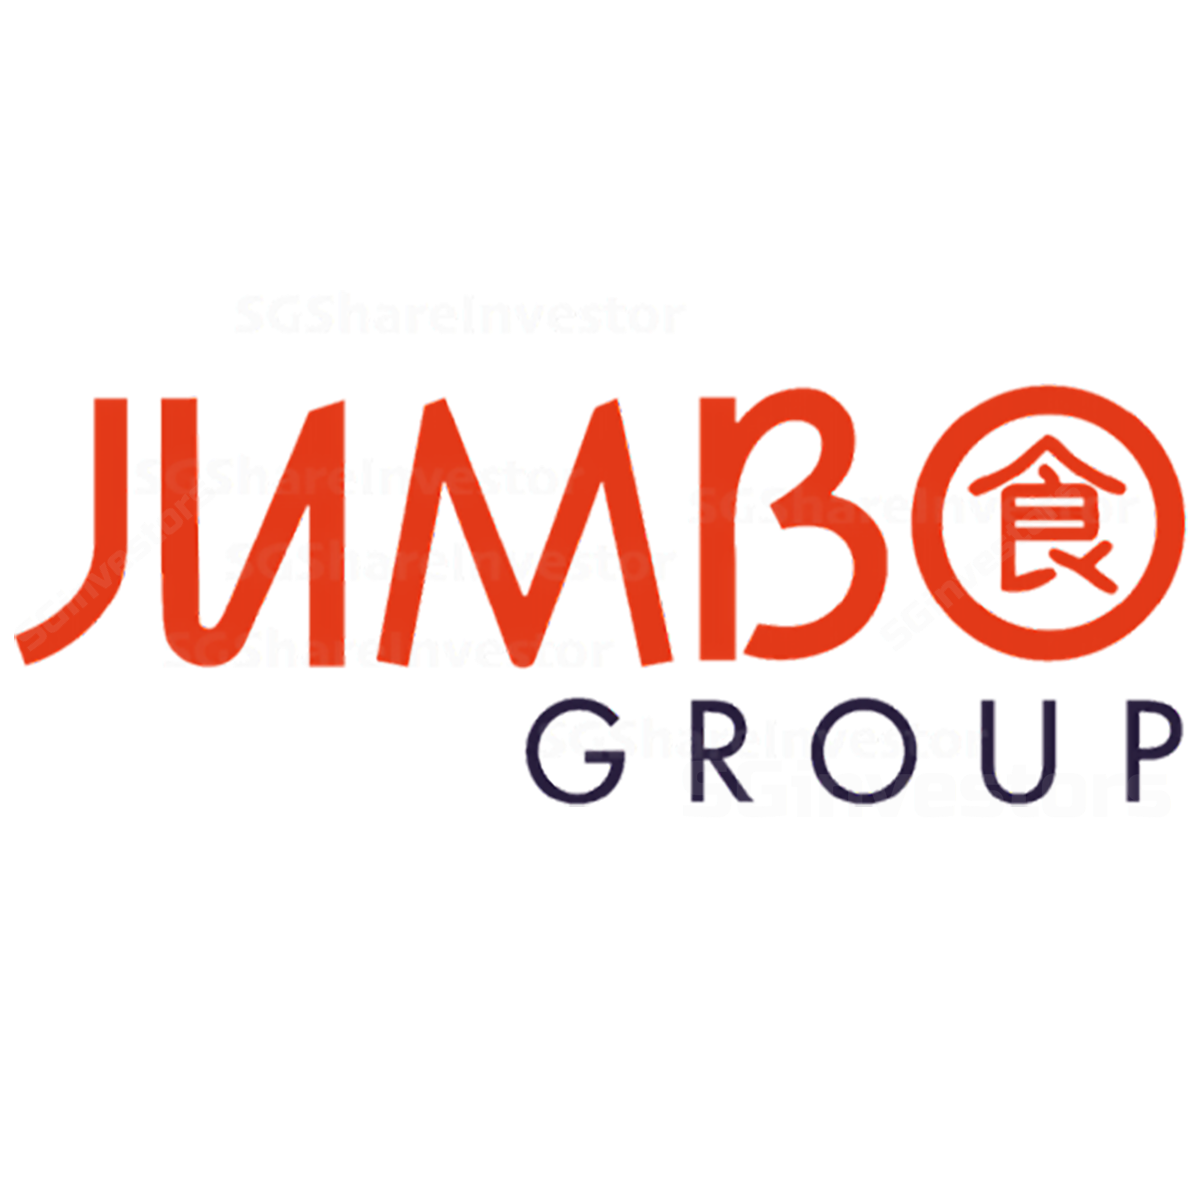 Jumbo Group (JUMBO SP) - UOB Kay Hian 2017-02-15: 1QFY17 Seasonally Weak Results; Expect Pick-up In 2QFY17